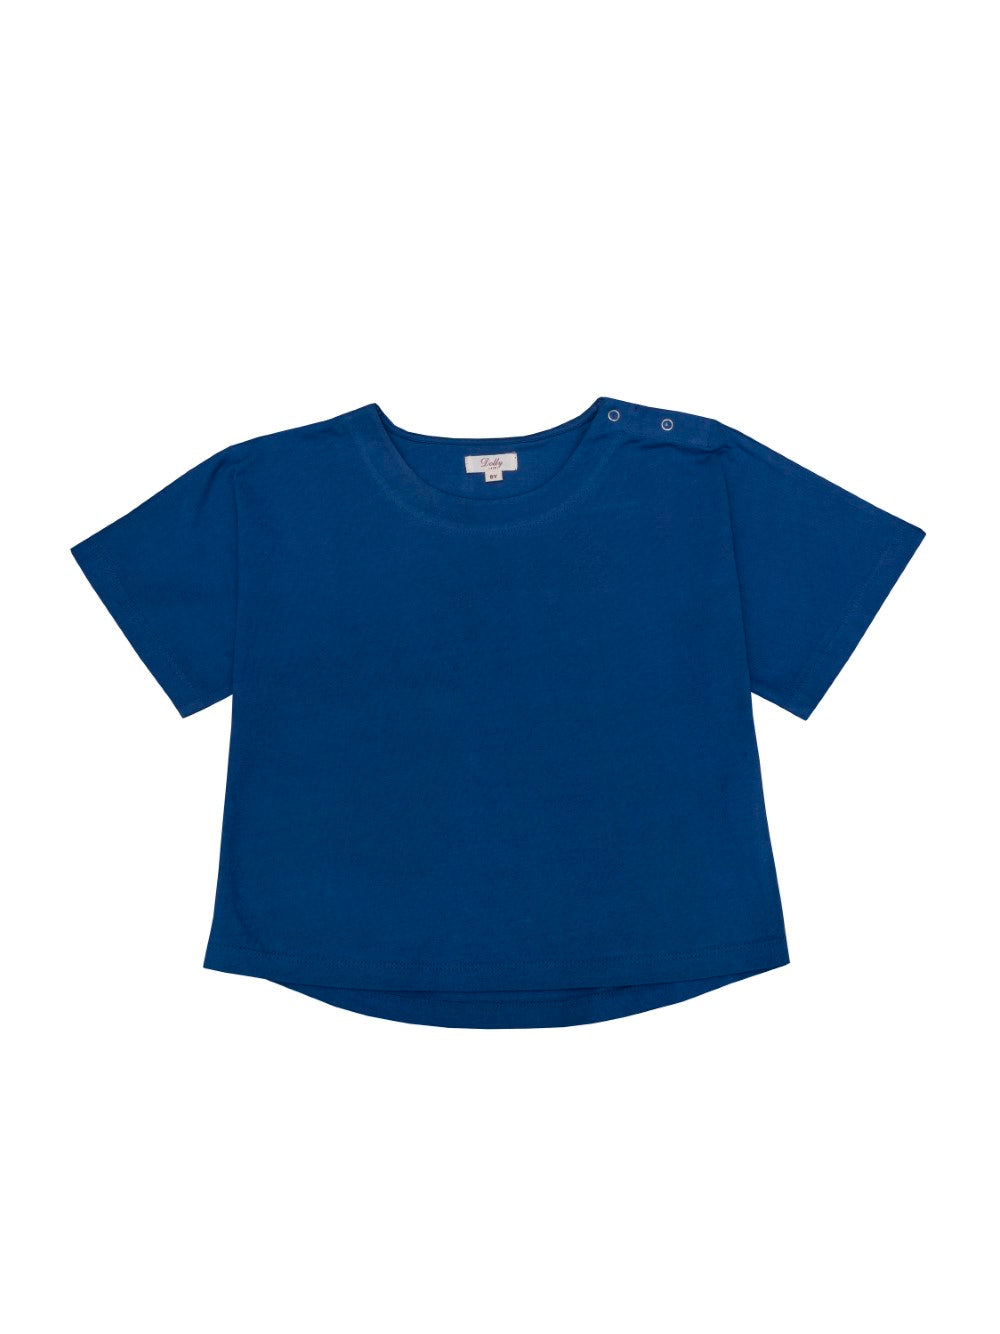 Blue Sailor Tee